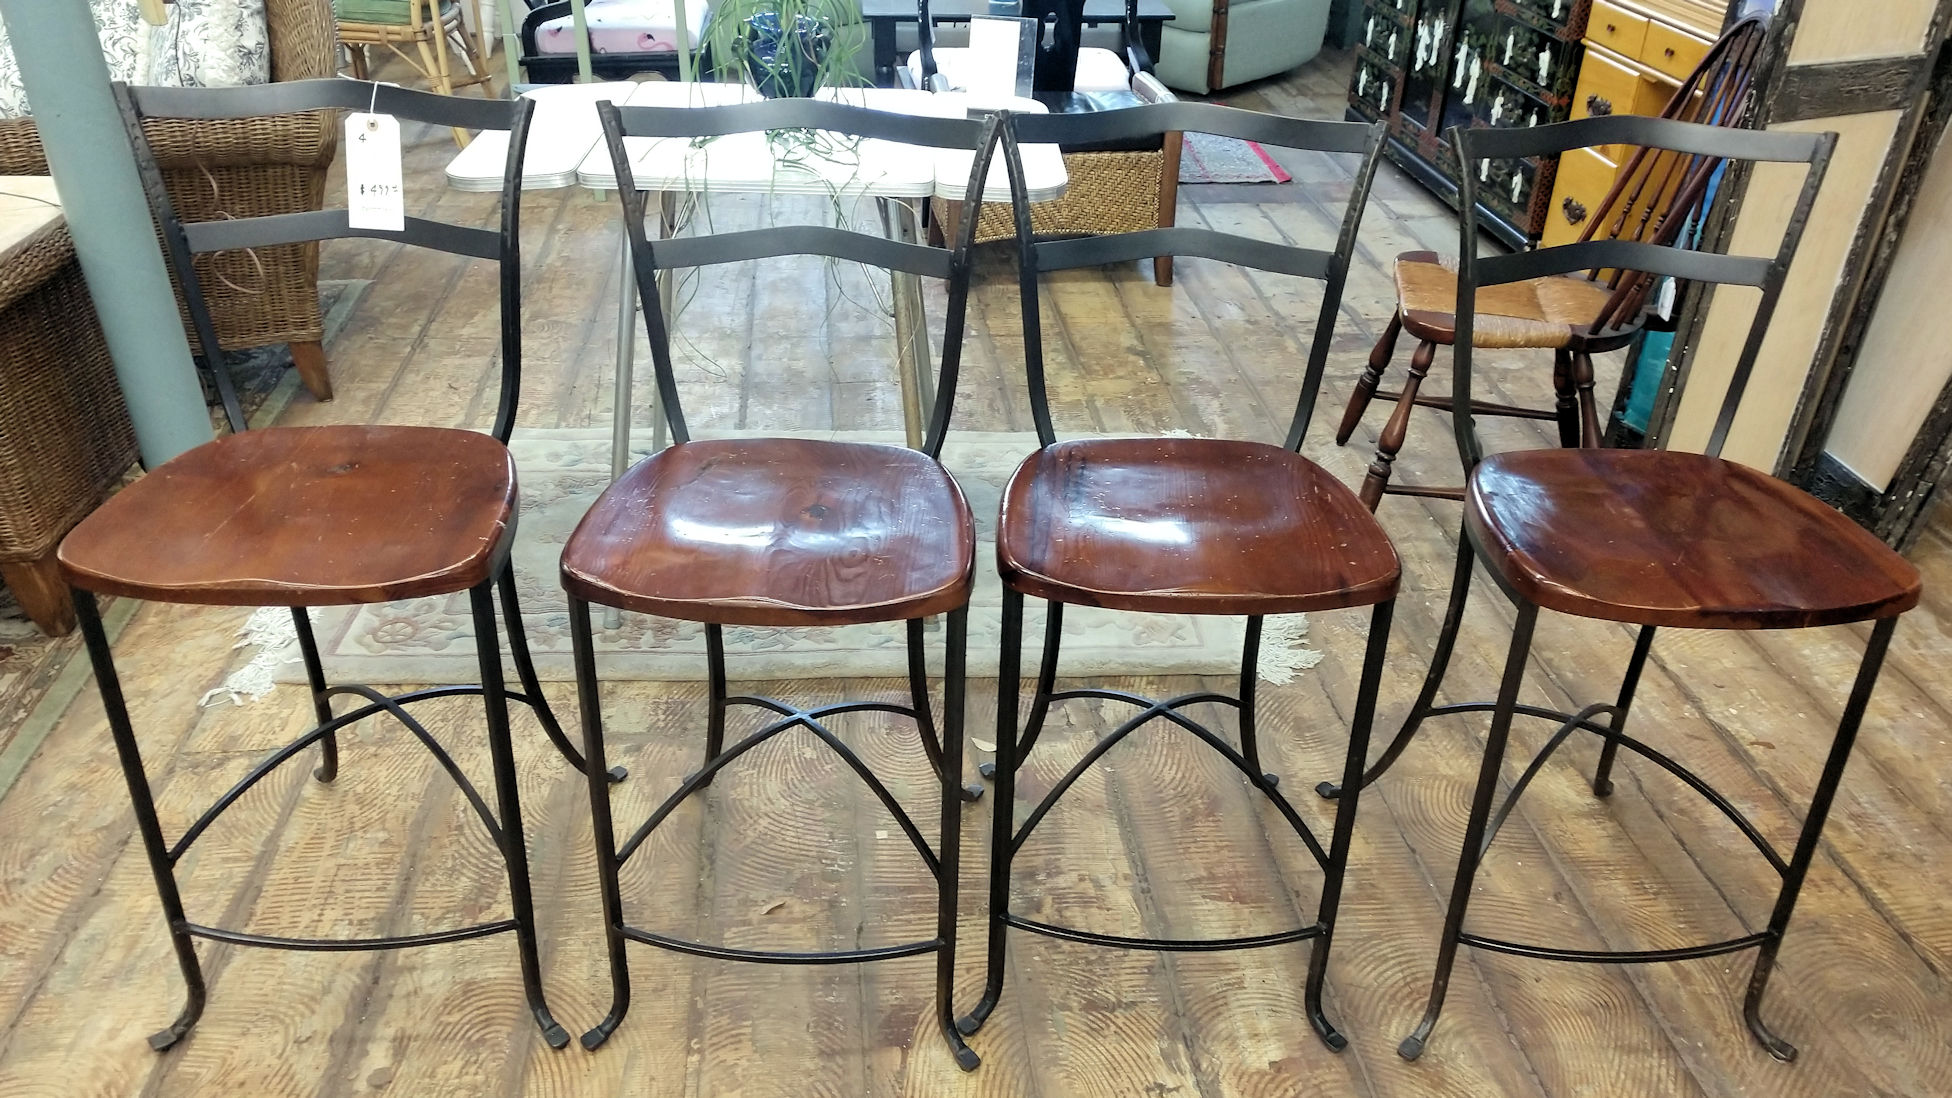 KT0027-Wrought-Iron-4-Bar-Stools-wood-seat1